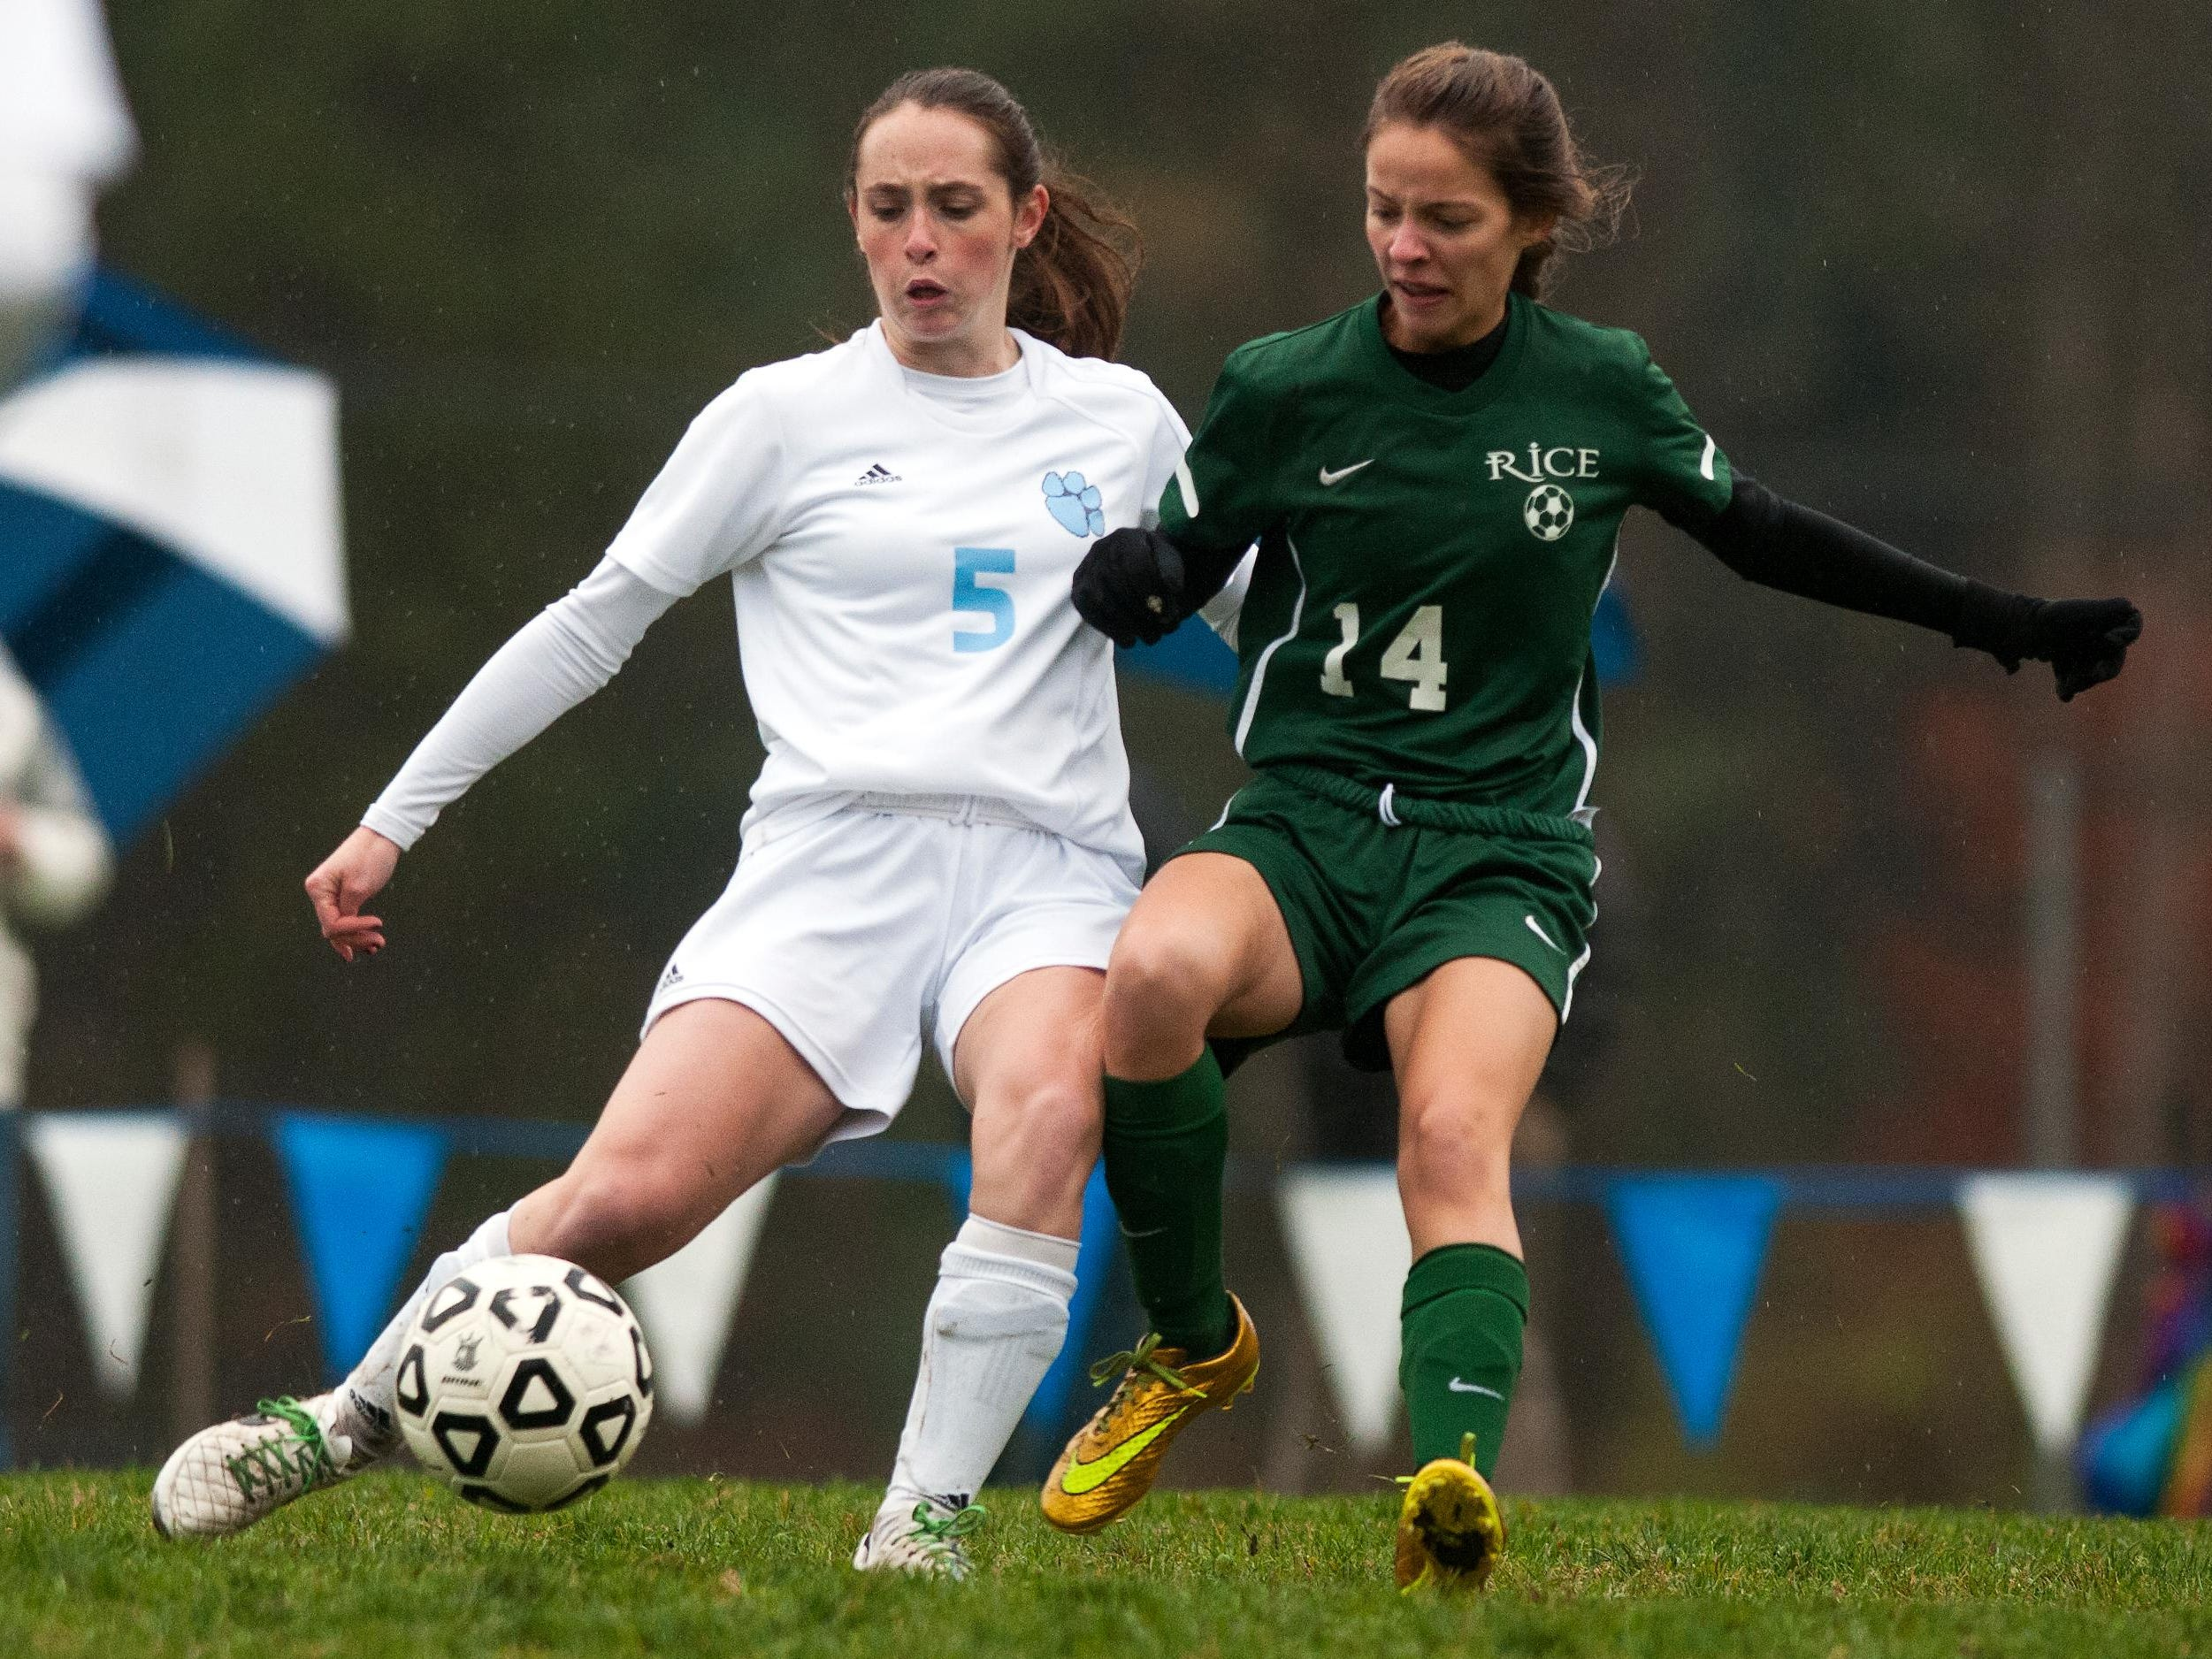 MMU's Molly Finn (5) and Rice's Katrina Garrow (14) battle for the ball during the girls soccer playoff game between the Rice Green Knights and the Mount Mansfield Cougars in 2014.